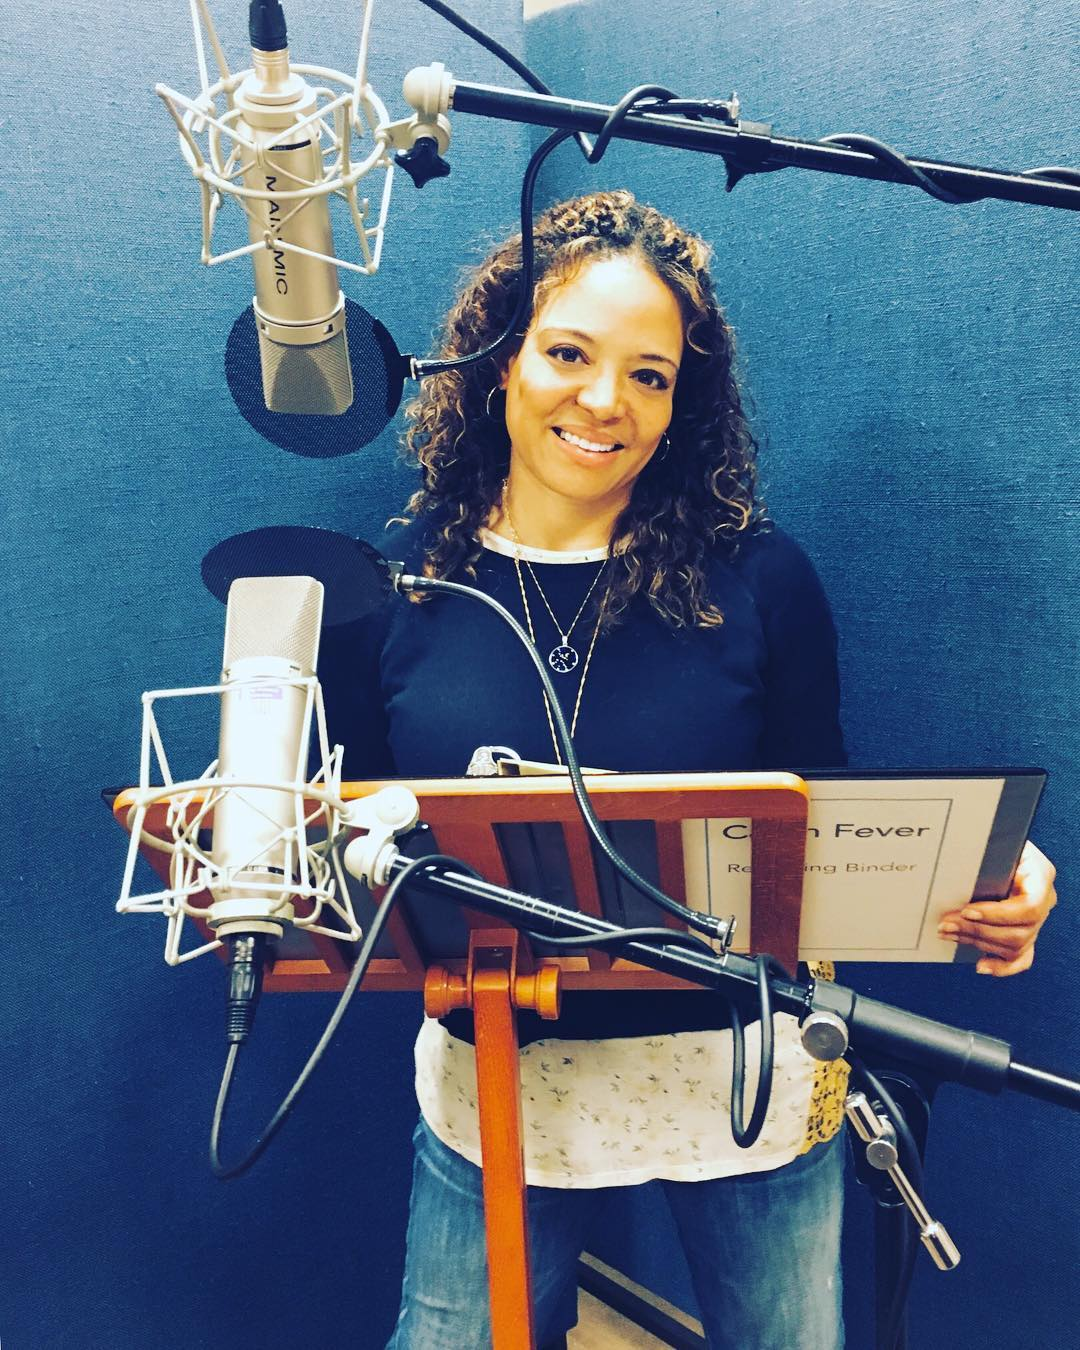 Luna Lauren Velez Singing Song